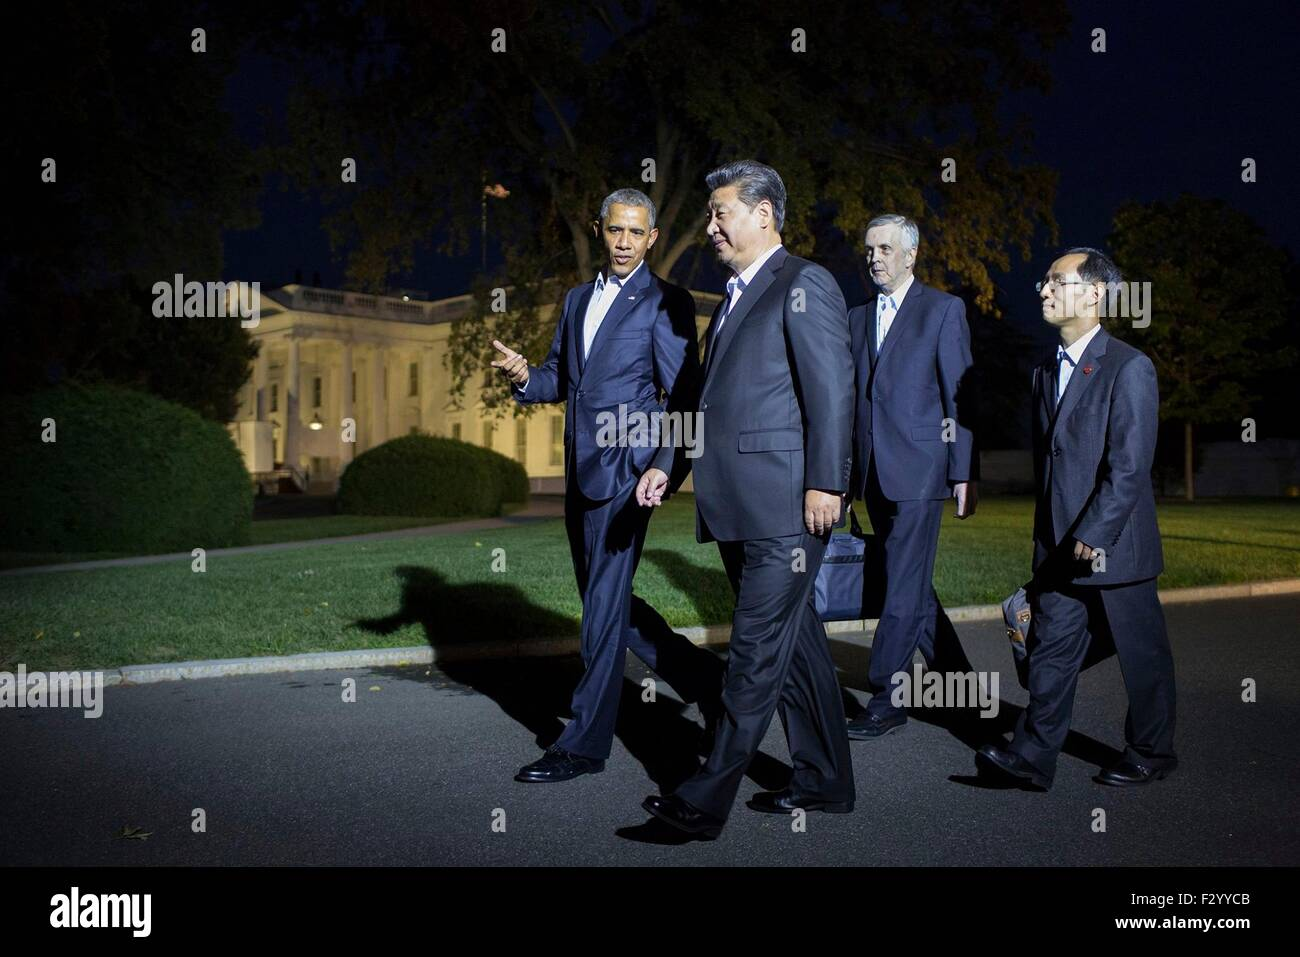 Washington DC, USA. 25th Sep, 2015. U.S. President Barack Obama has a private walk with Chinese President Xi Jinping - Stock Image